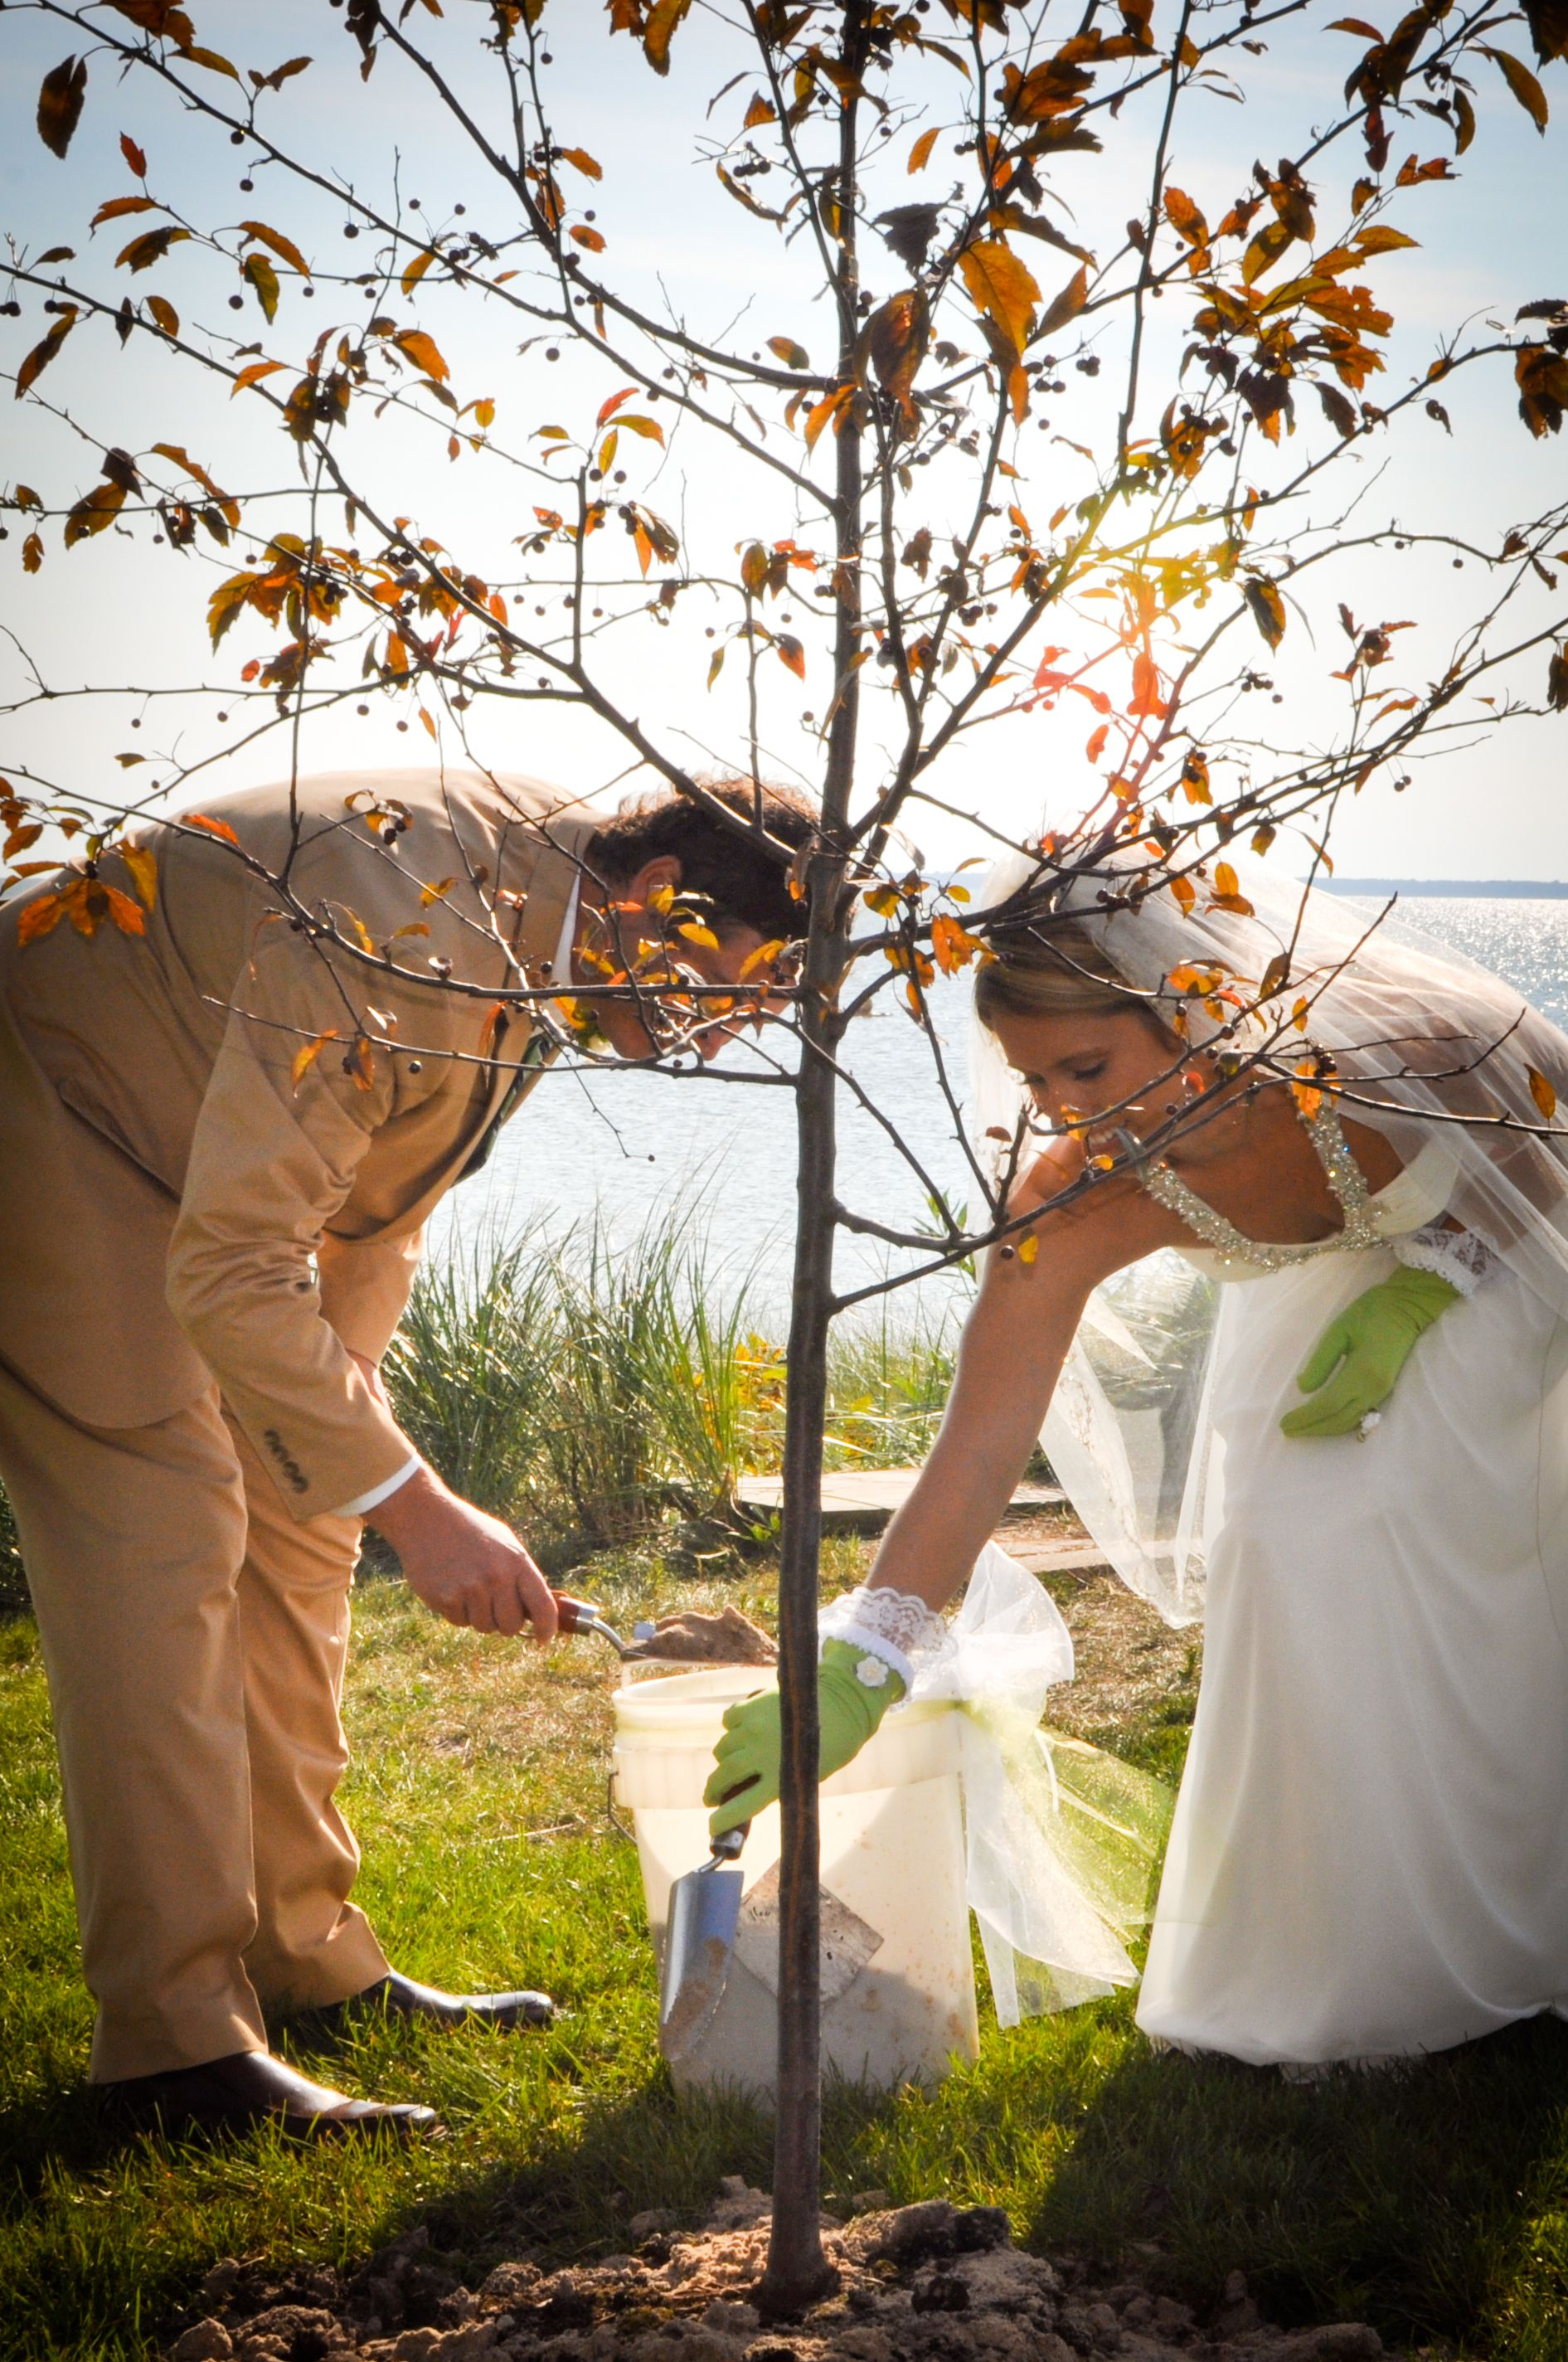 A tree planting ceremony at a wedding. What a great way to